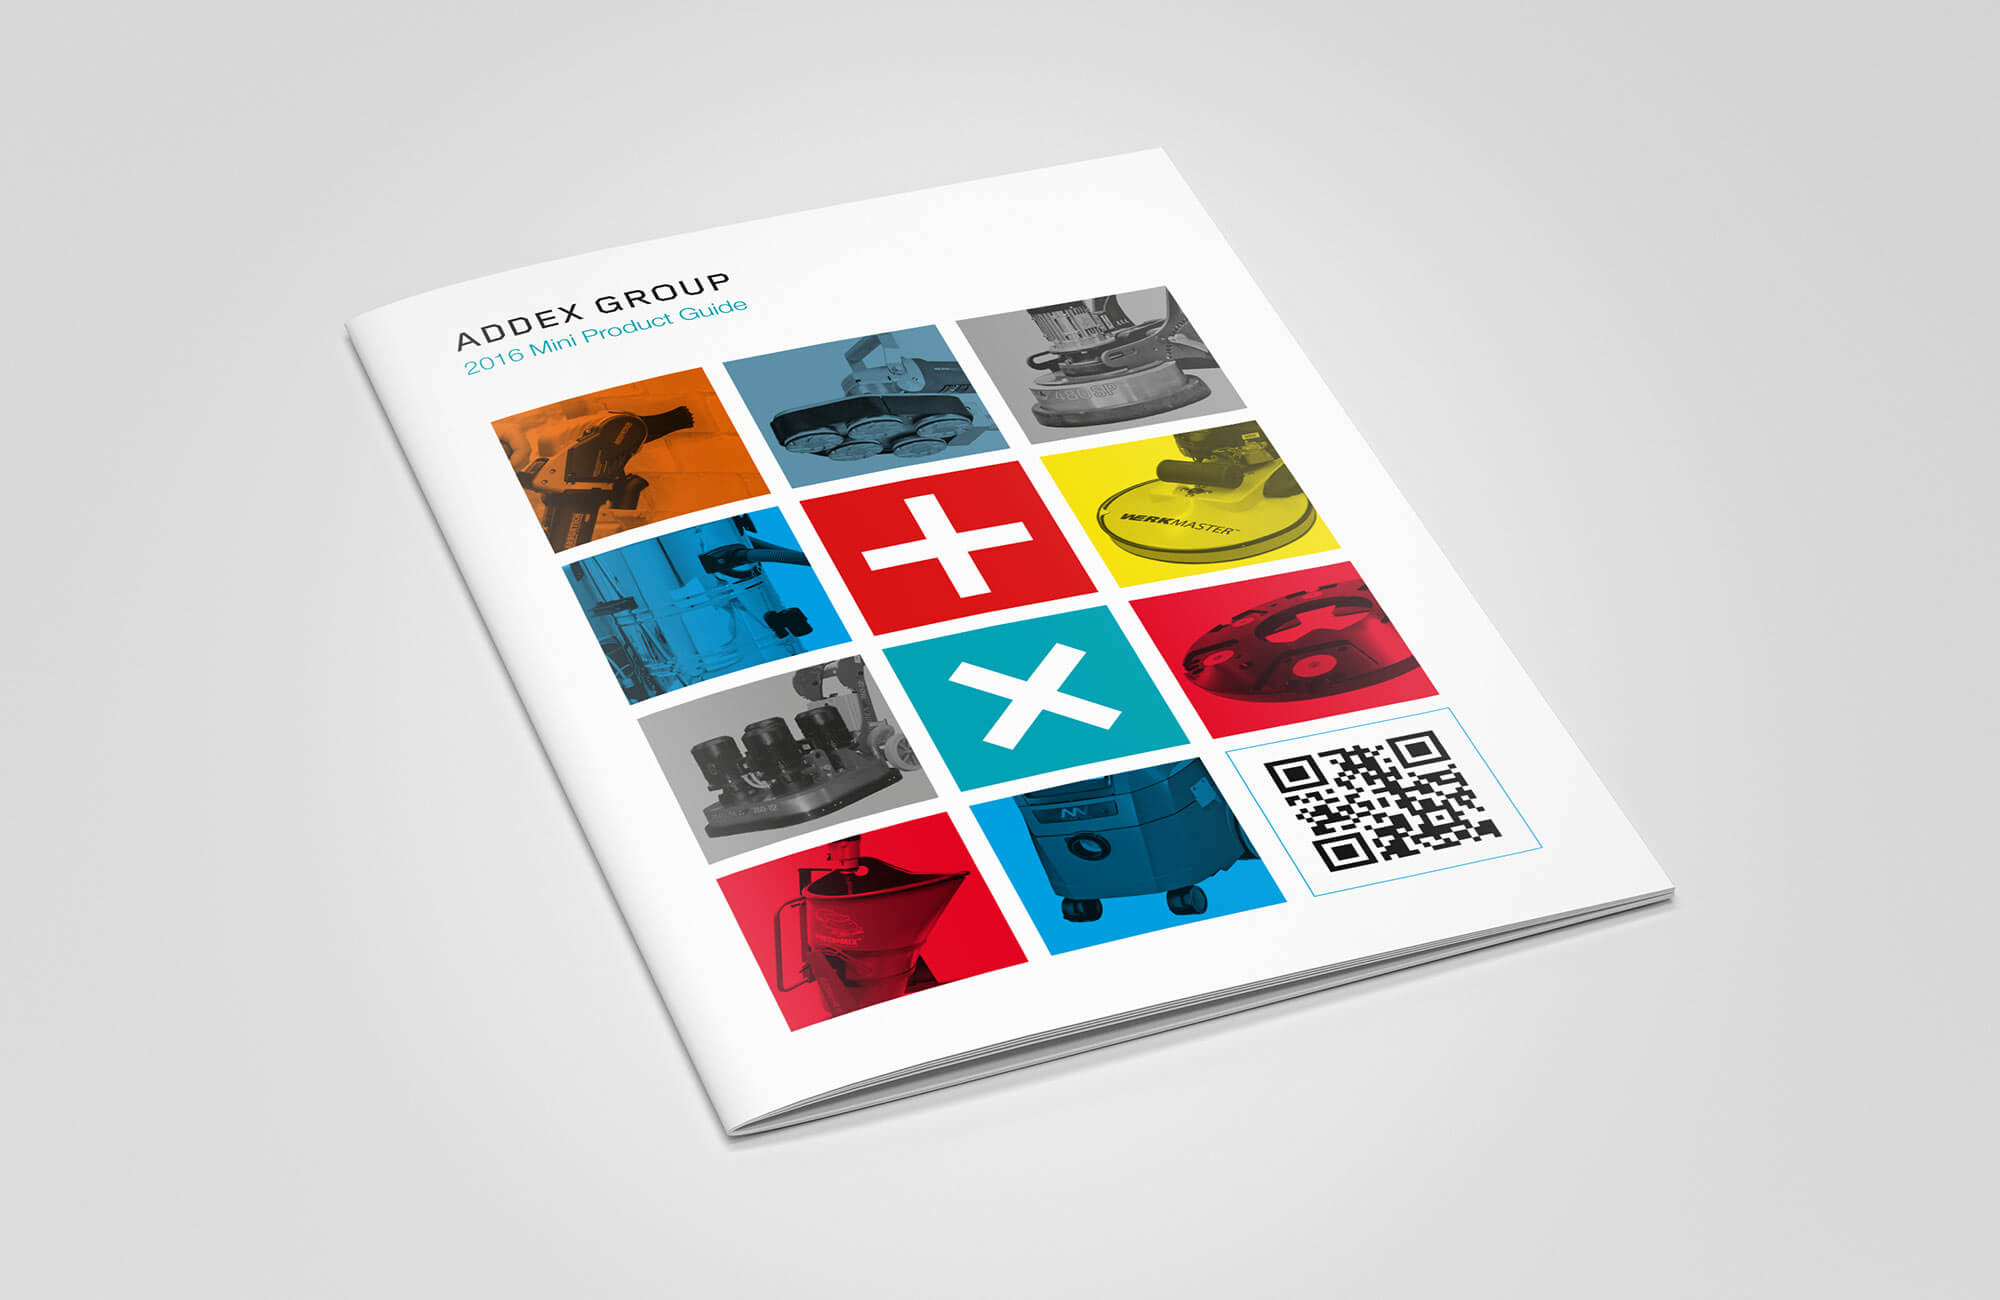 Addex Group Product Guide Design and Printing